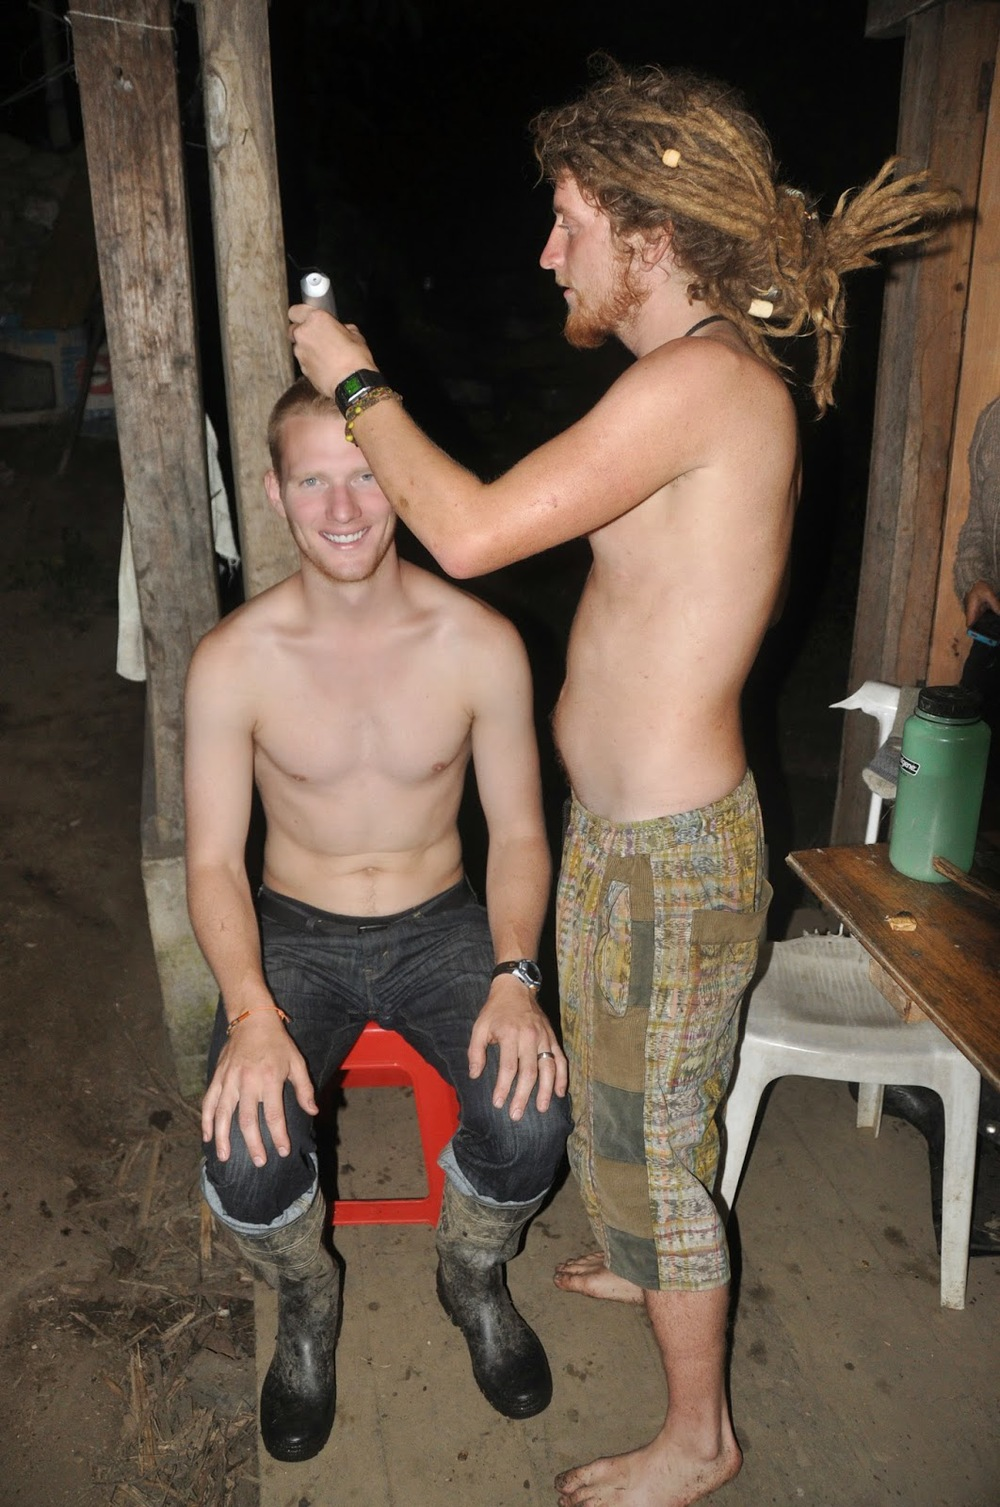 Oh, and on our last night, Nick shaved off the rest of Ben's Mohawk. He looks pretty happy about it!